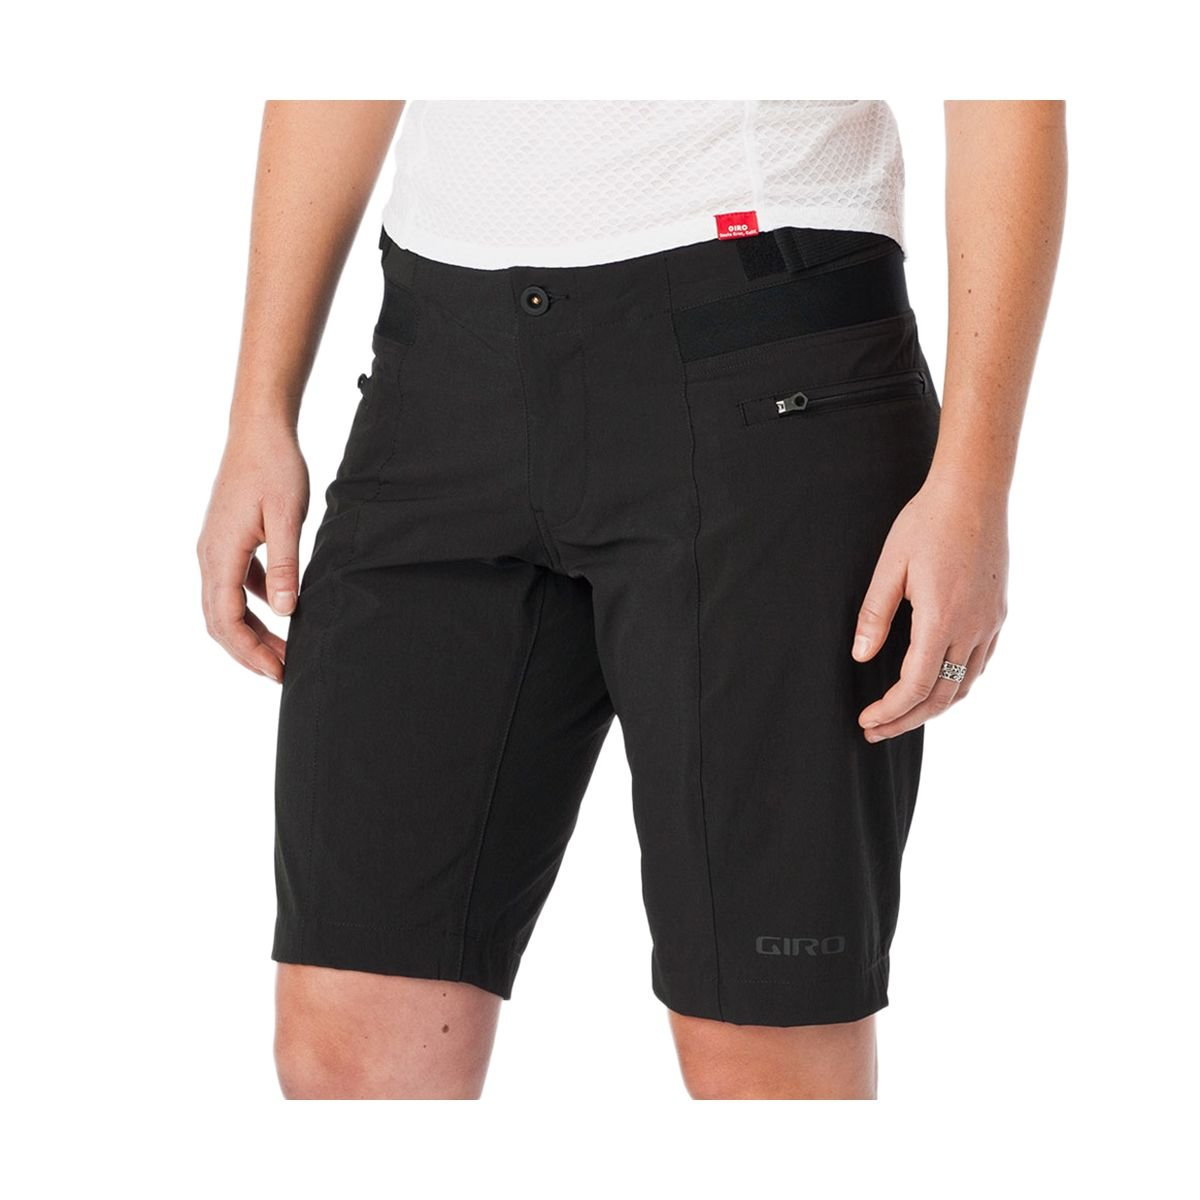 Giro Truant Cycleshort Women Black Size 8 2016 Men Bike Undershorts   B015T7EJOQ